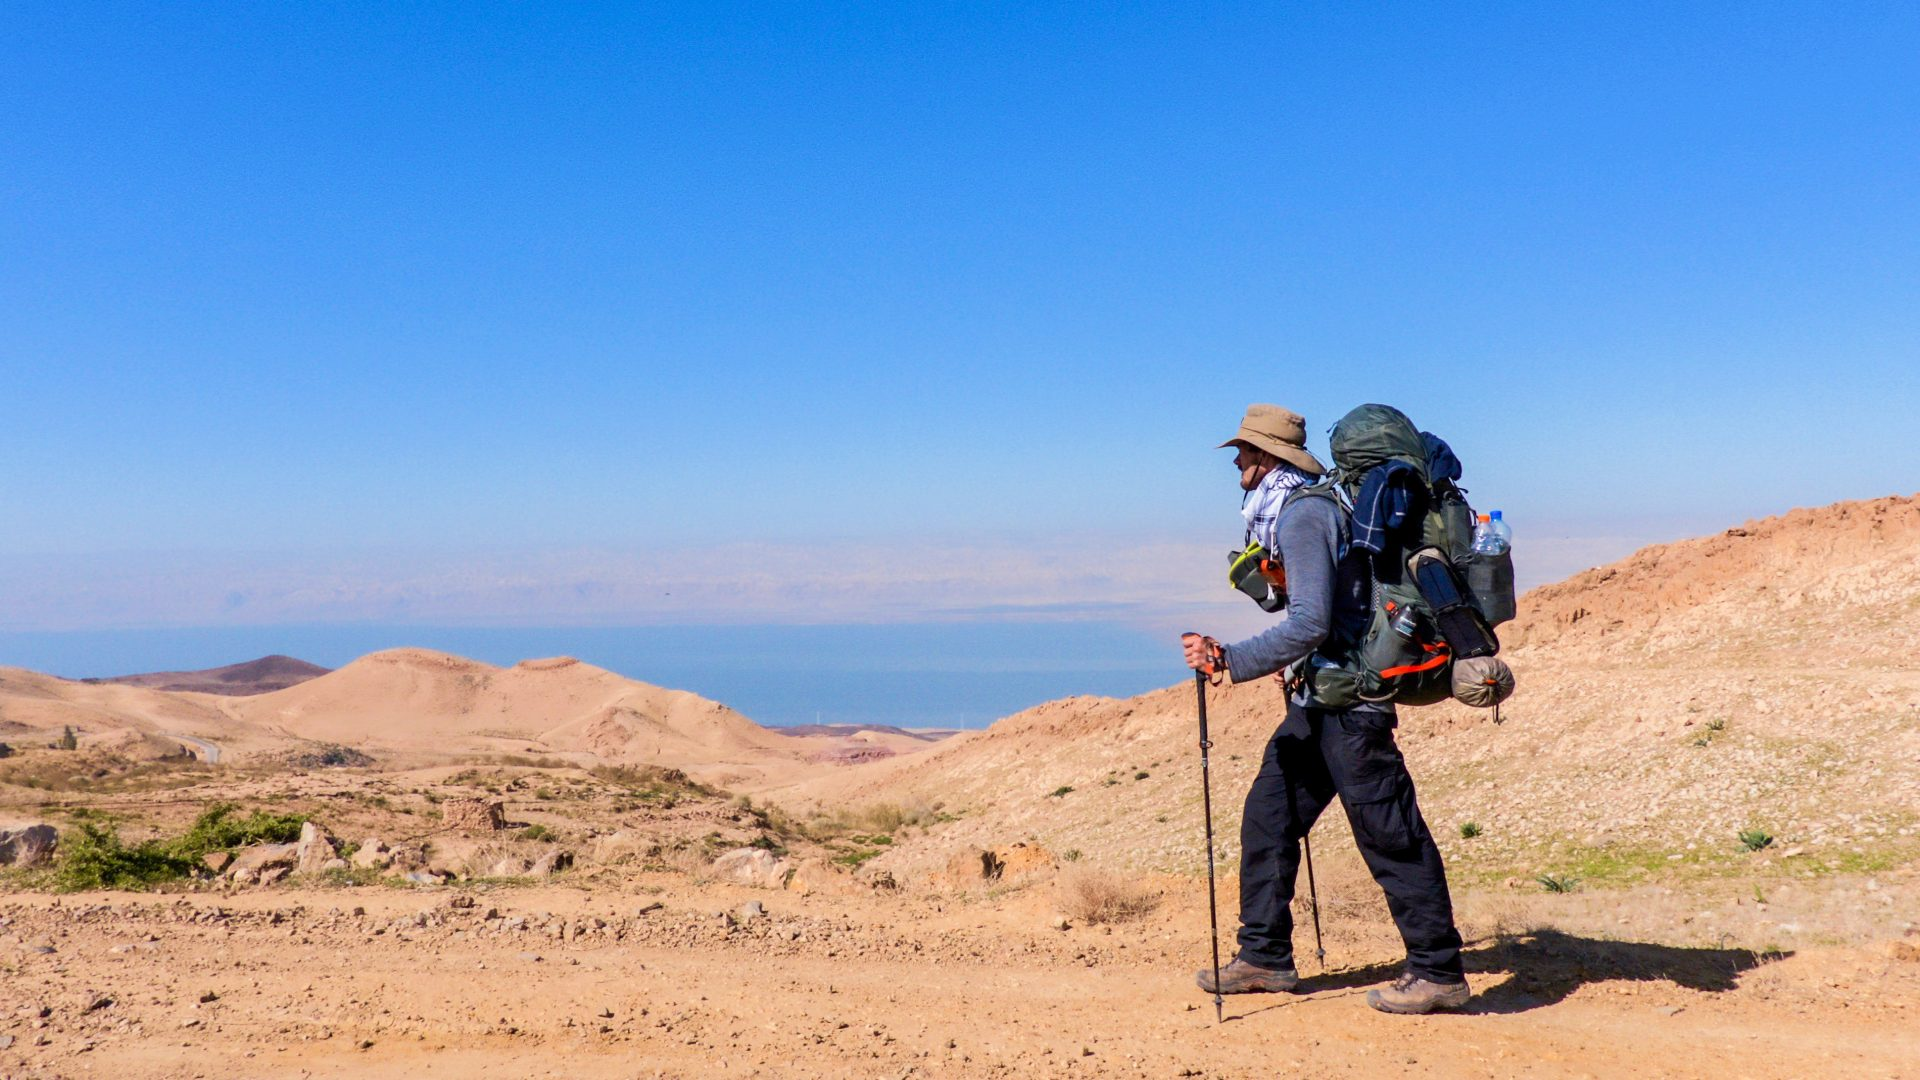 Things to Carry While Traveling on Desert